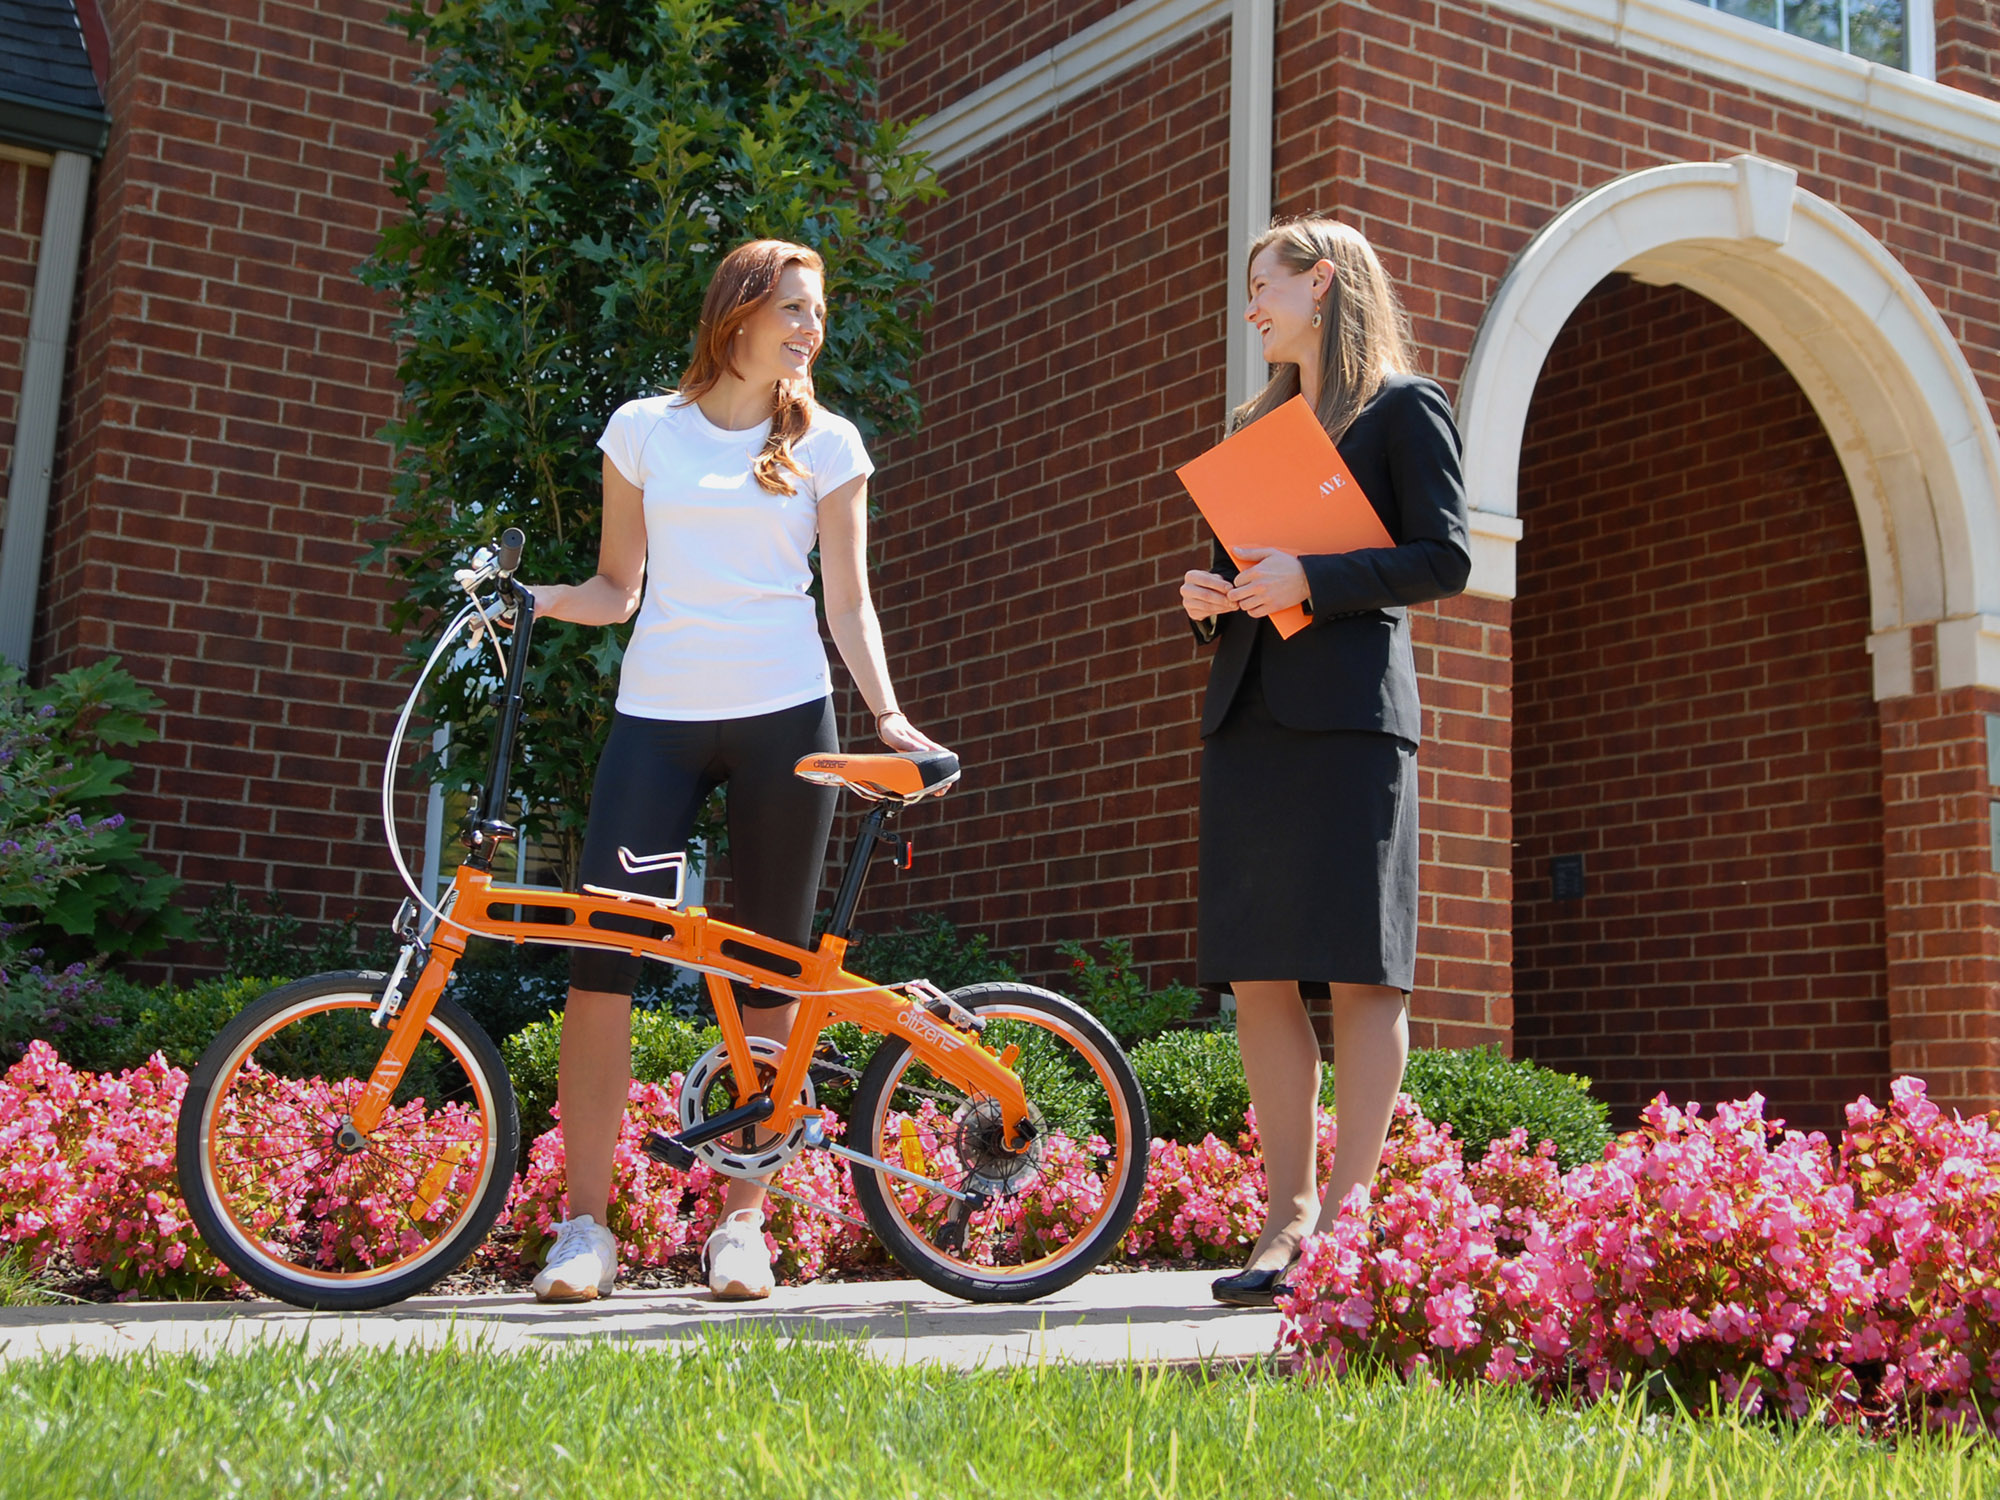 AVE Launches Complimentary Bike Share Amenity for Residents